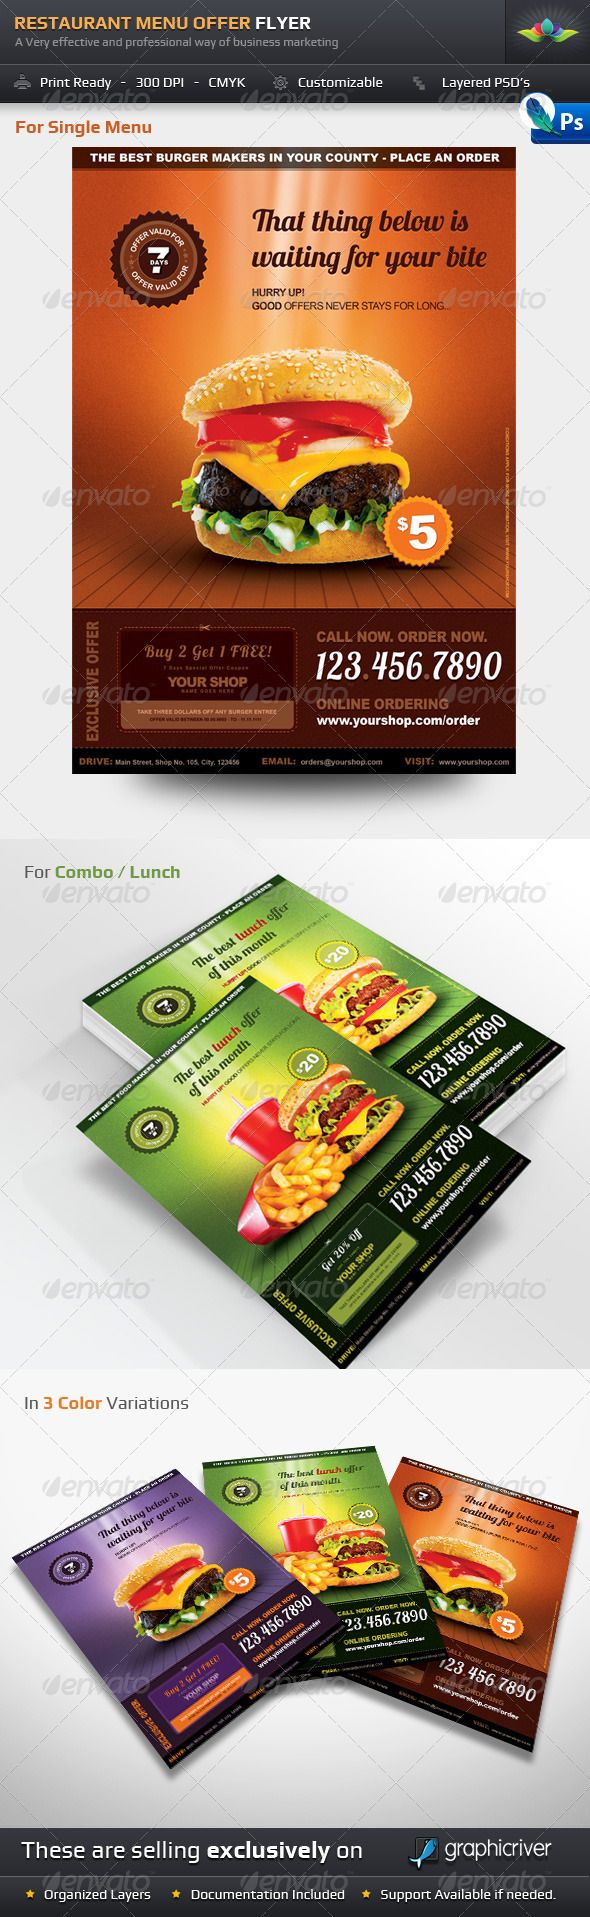 17 best images about marketing flyer